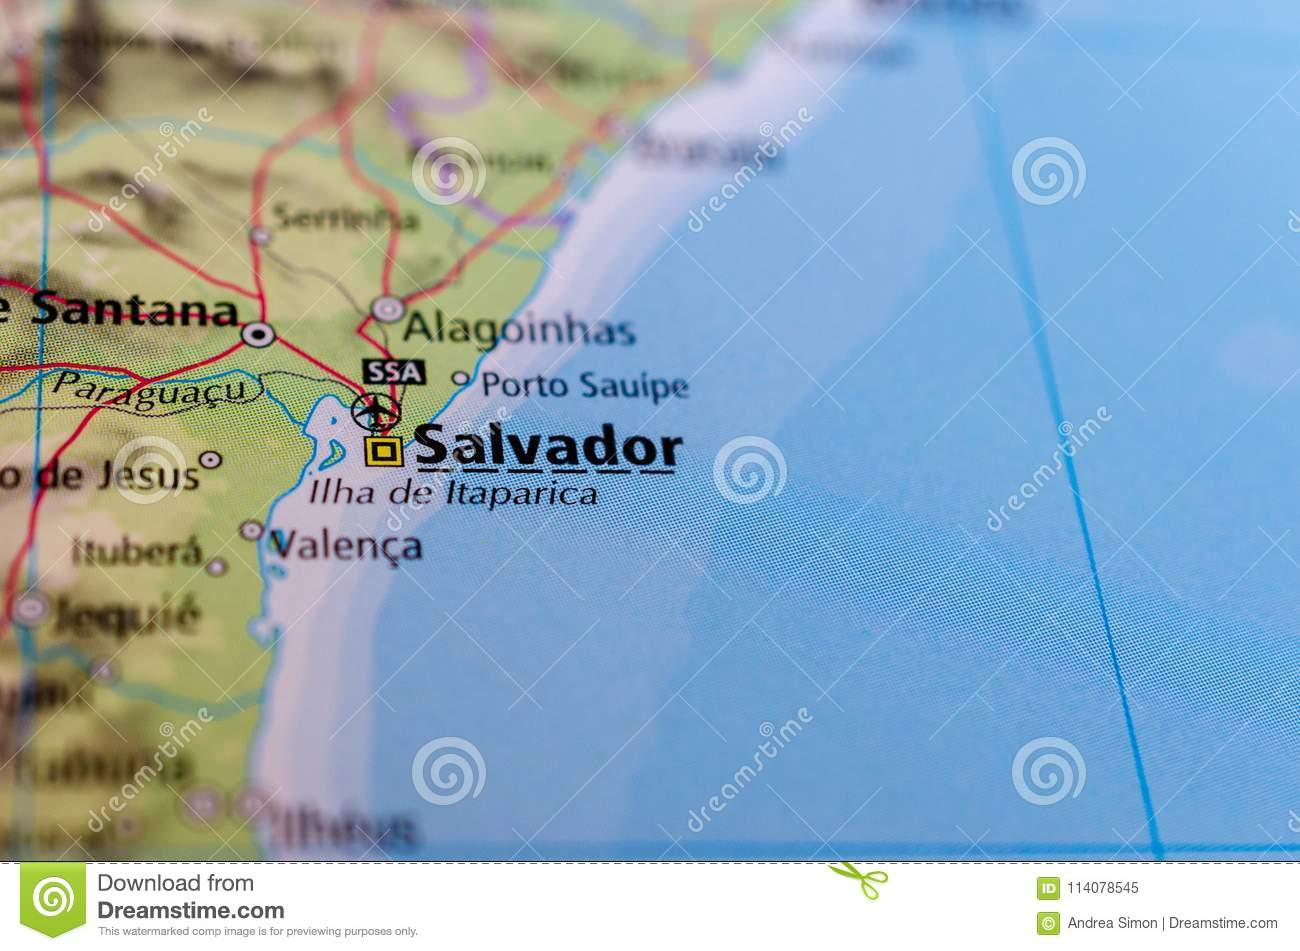 salvador bahia brazil map Salvador Bahia On Map Stock Image Image Of Explore 114078545 salvador bahia brazil map